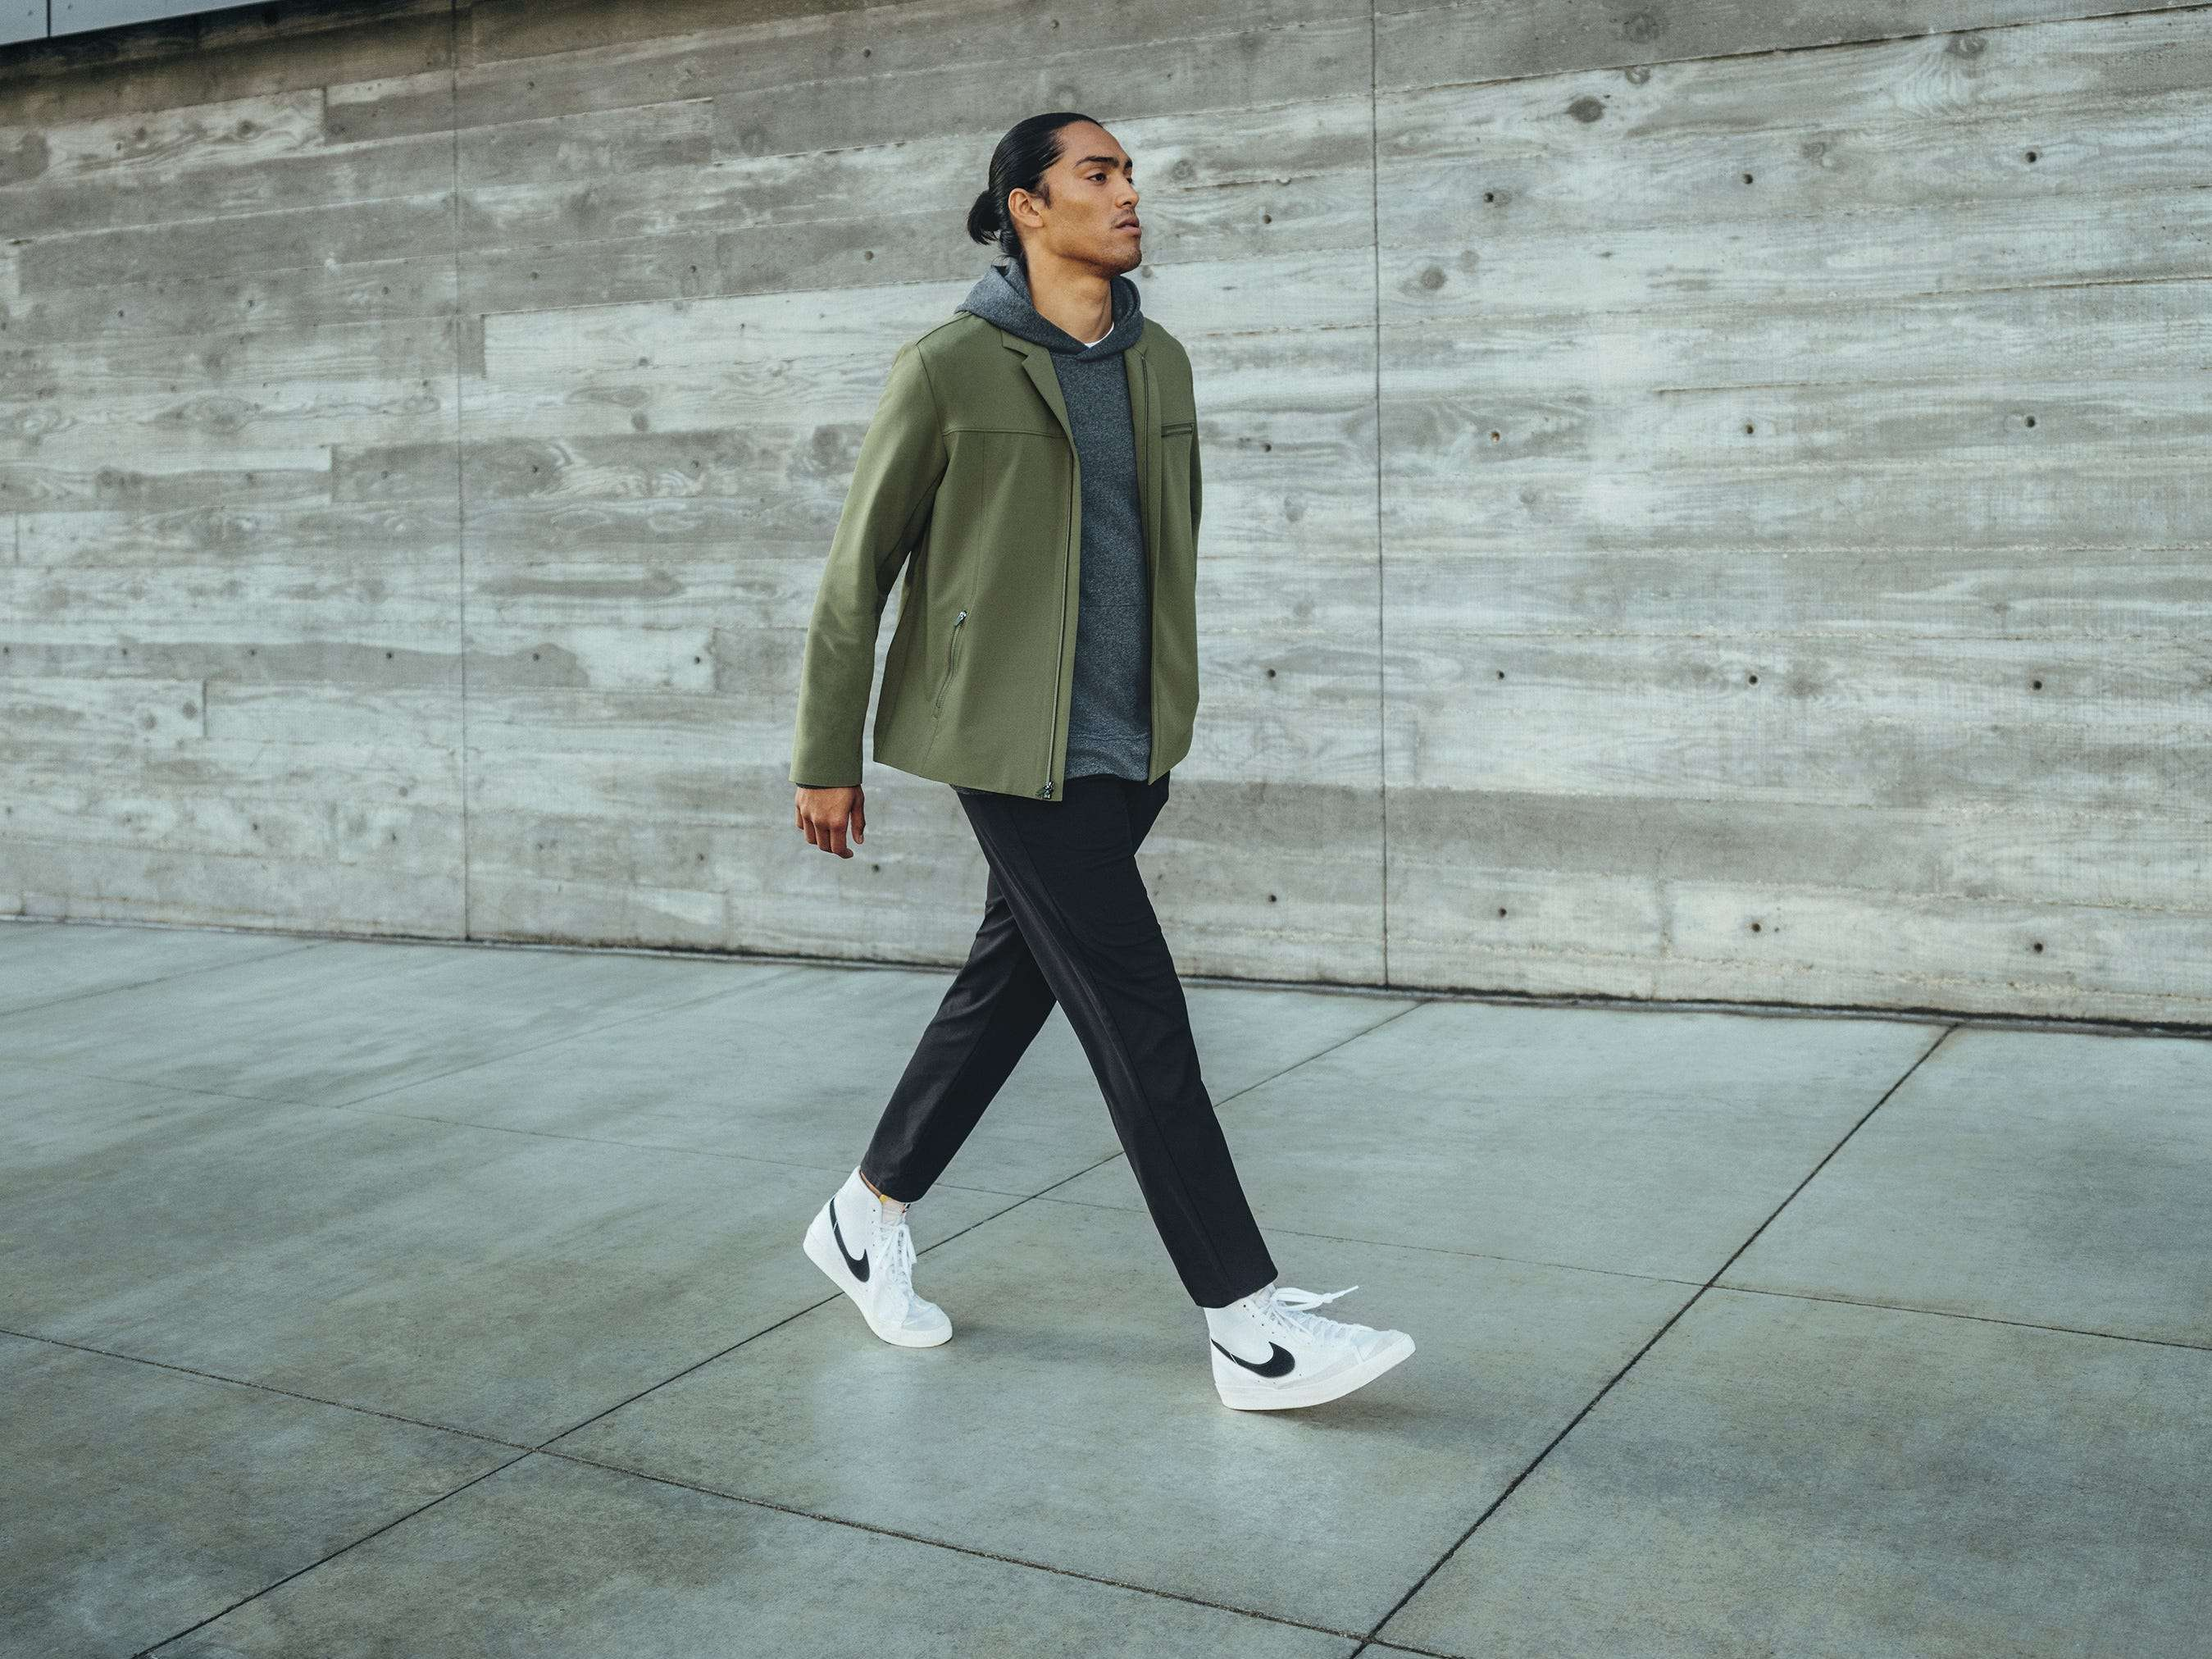 Dick's Sporting Goods launches new men's athleisure line to take on Lululemon